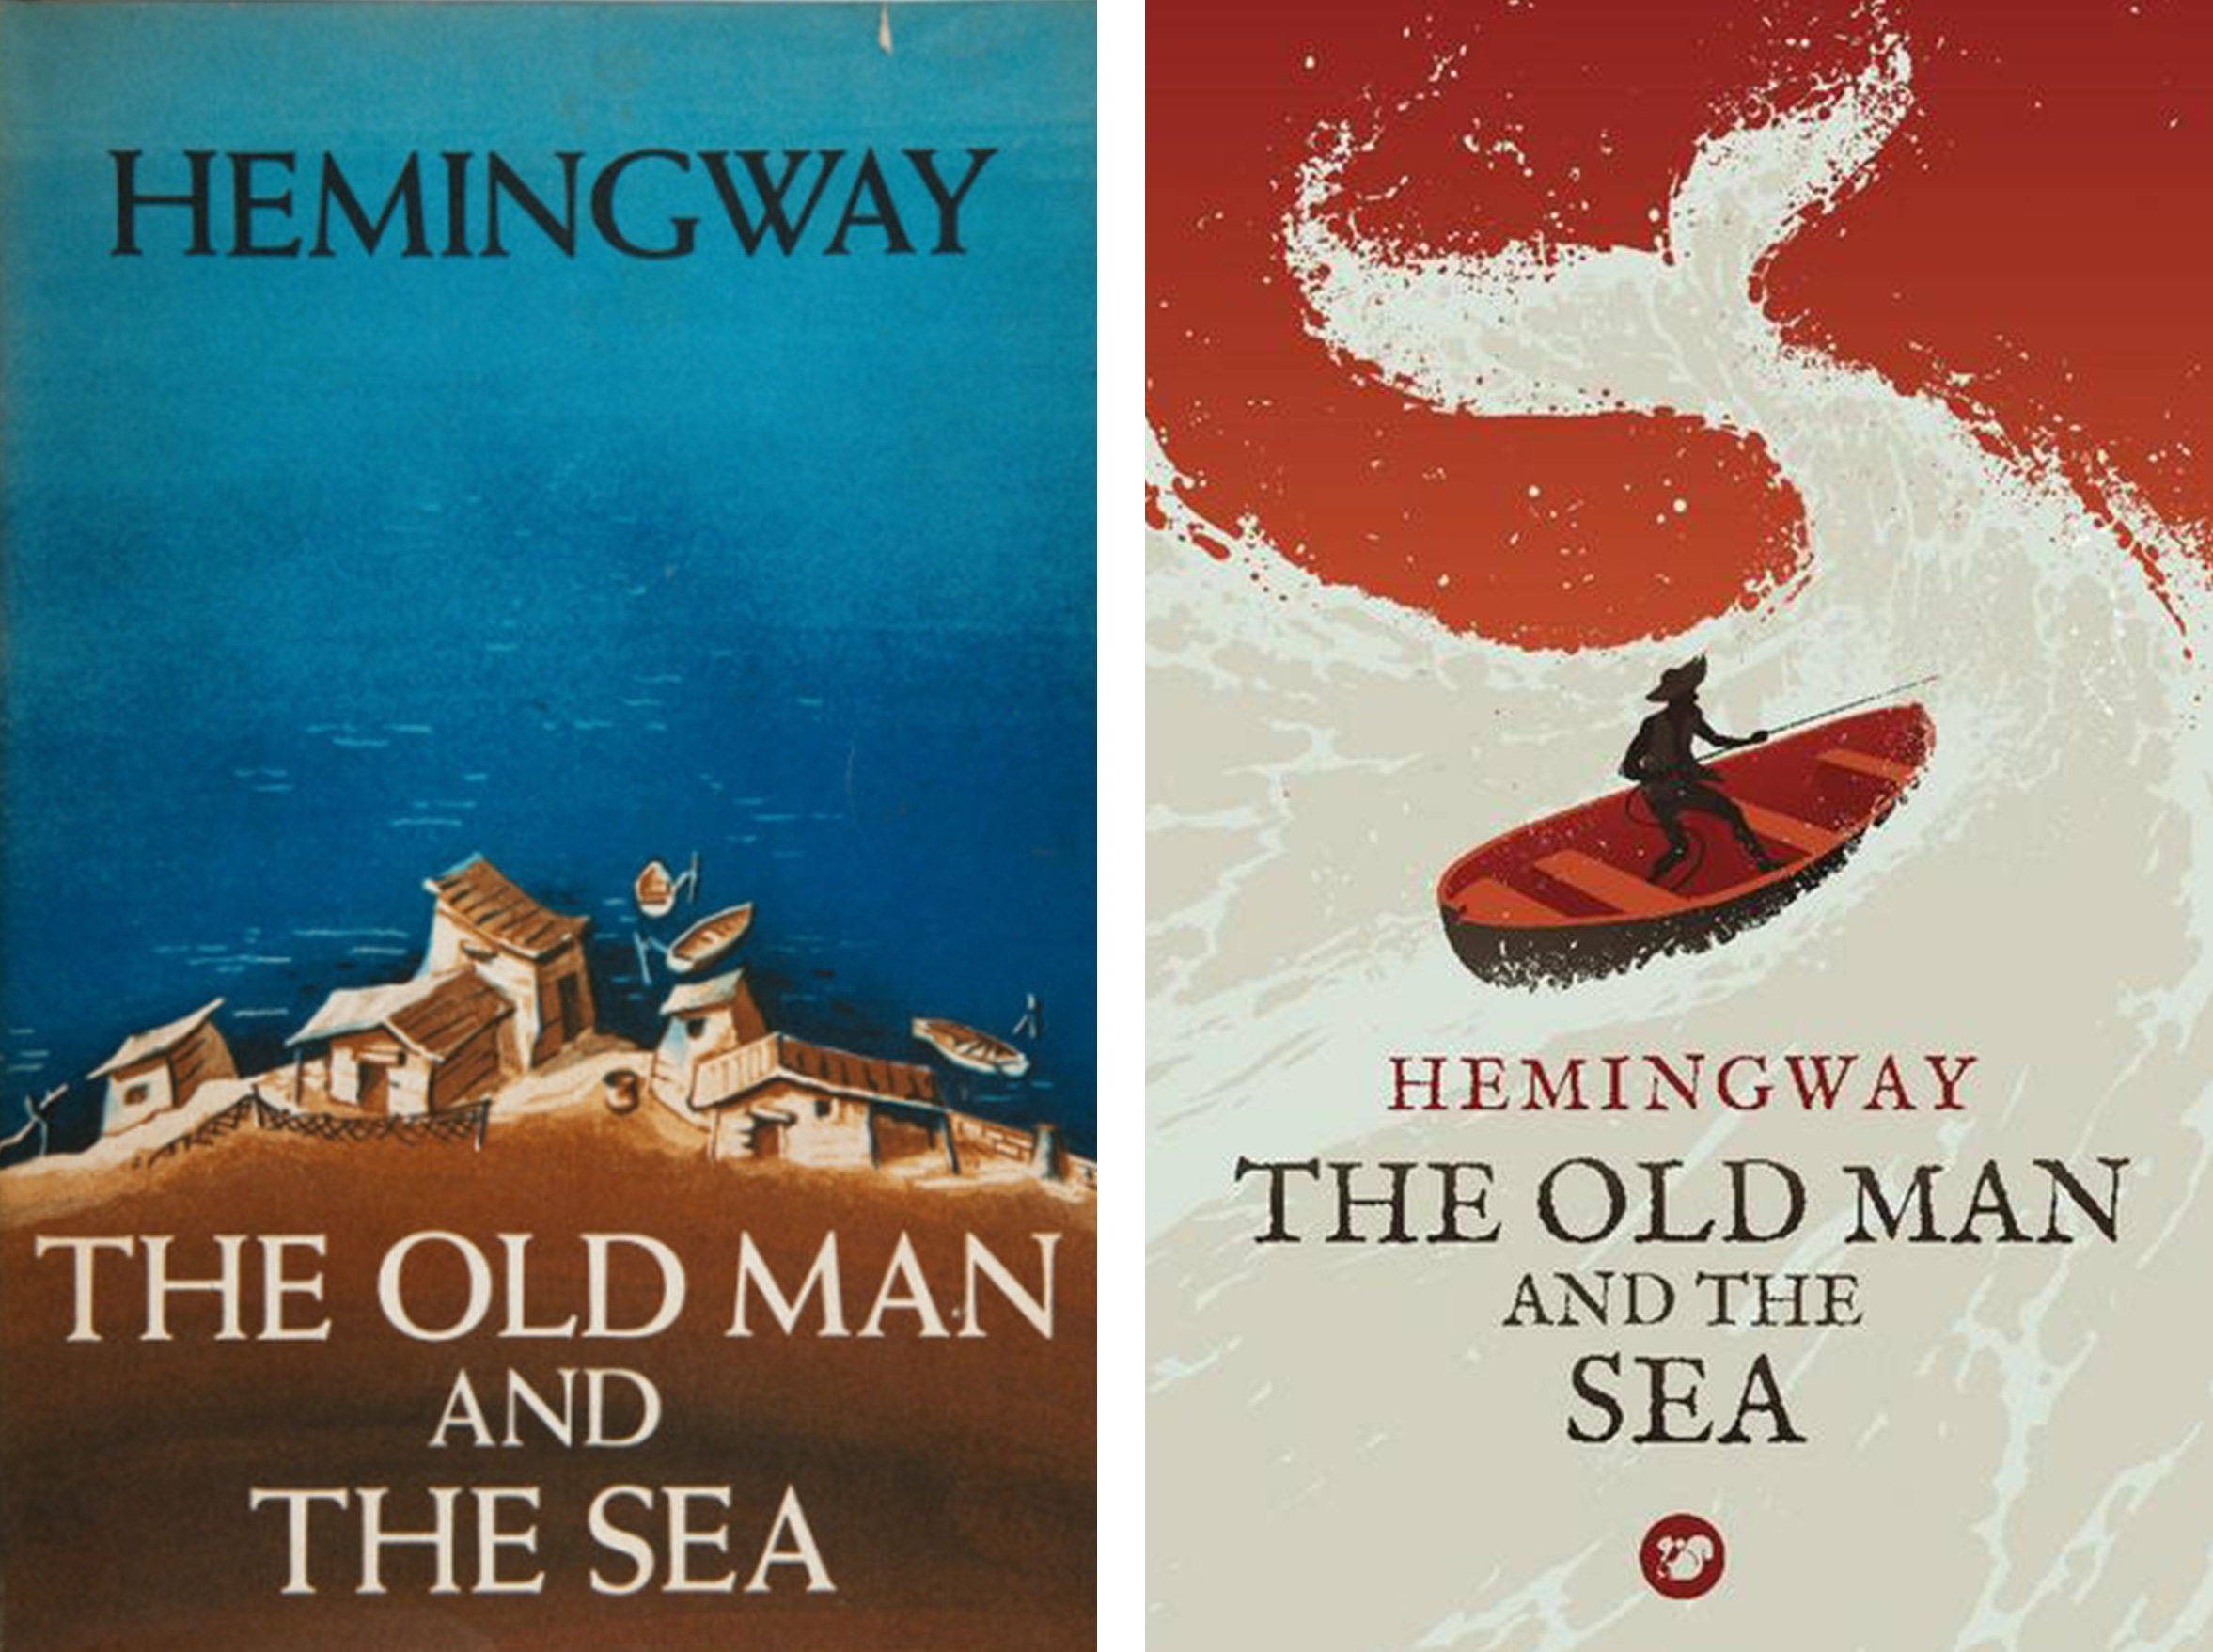 The evolution of book cover design the old man and the sea hemingway 9 buycottarizona Gallery